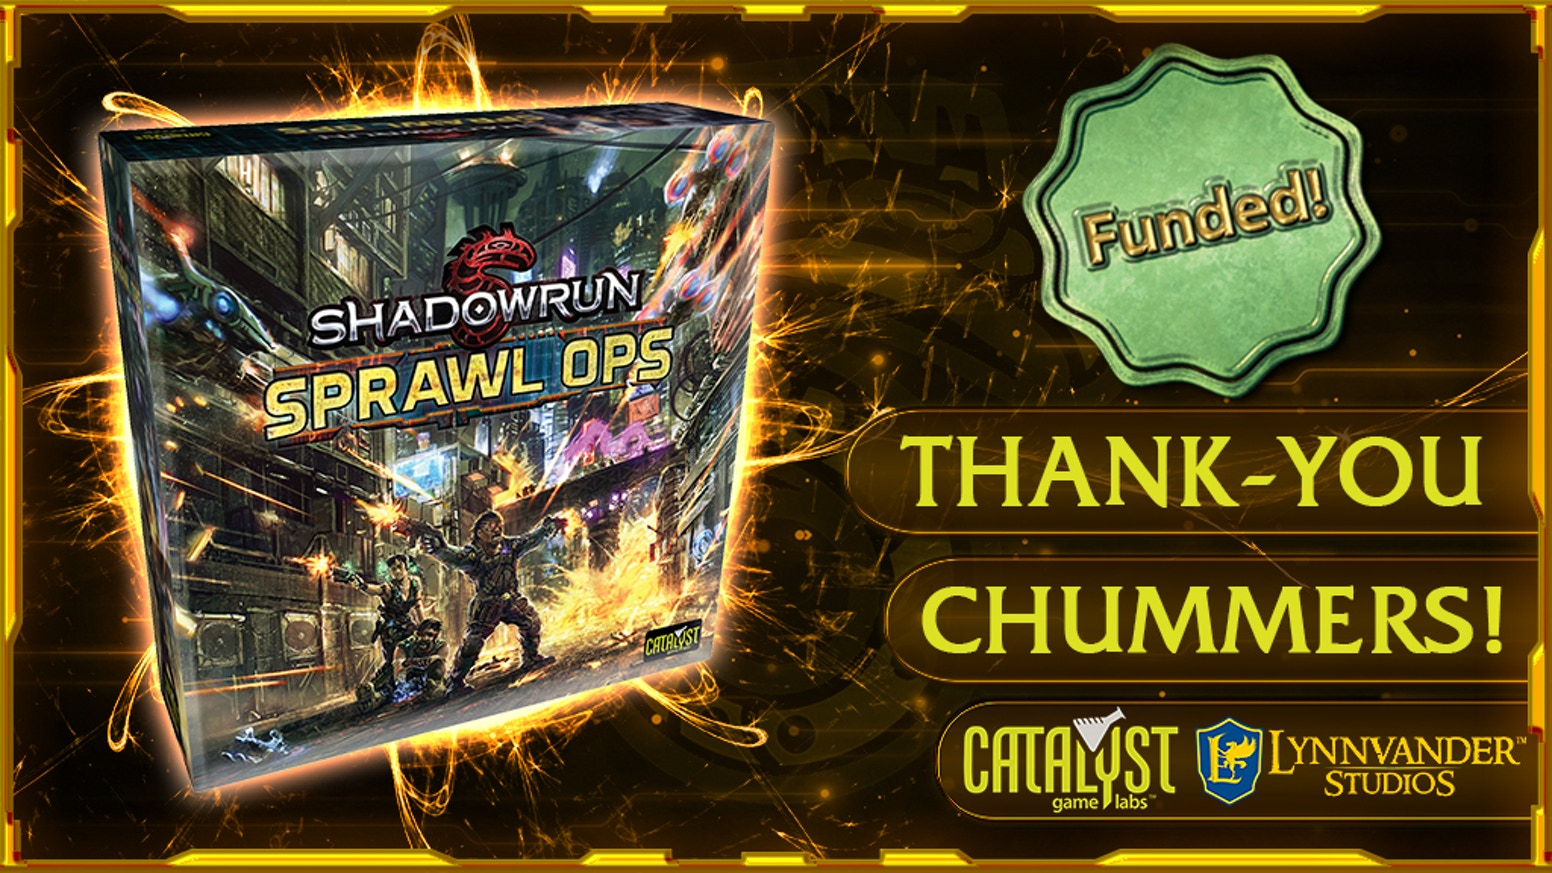 Shadowrun: Sprawl Ops Boardgame is the top crowdfunding project launched today. Shadowrun: Sprawl Ops Boardgame raised over $293201 from 2664 backers. Other top projects include Improving your Everyday Ritual with the Fluffiest Towel, Strange Hallway-Post Production of our short film, Ruby and Sapphire Wedding Enamel Pin Project...